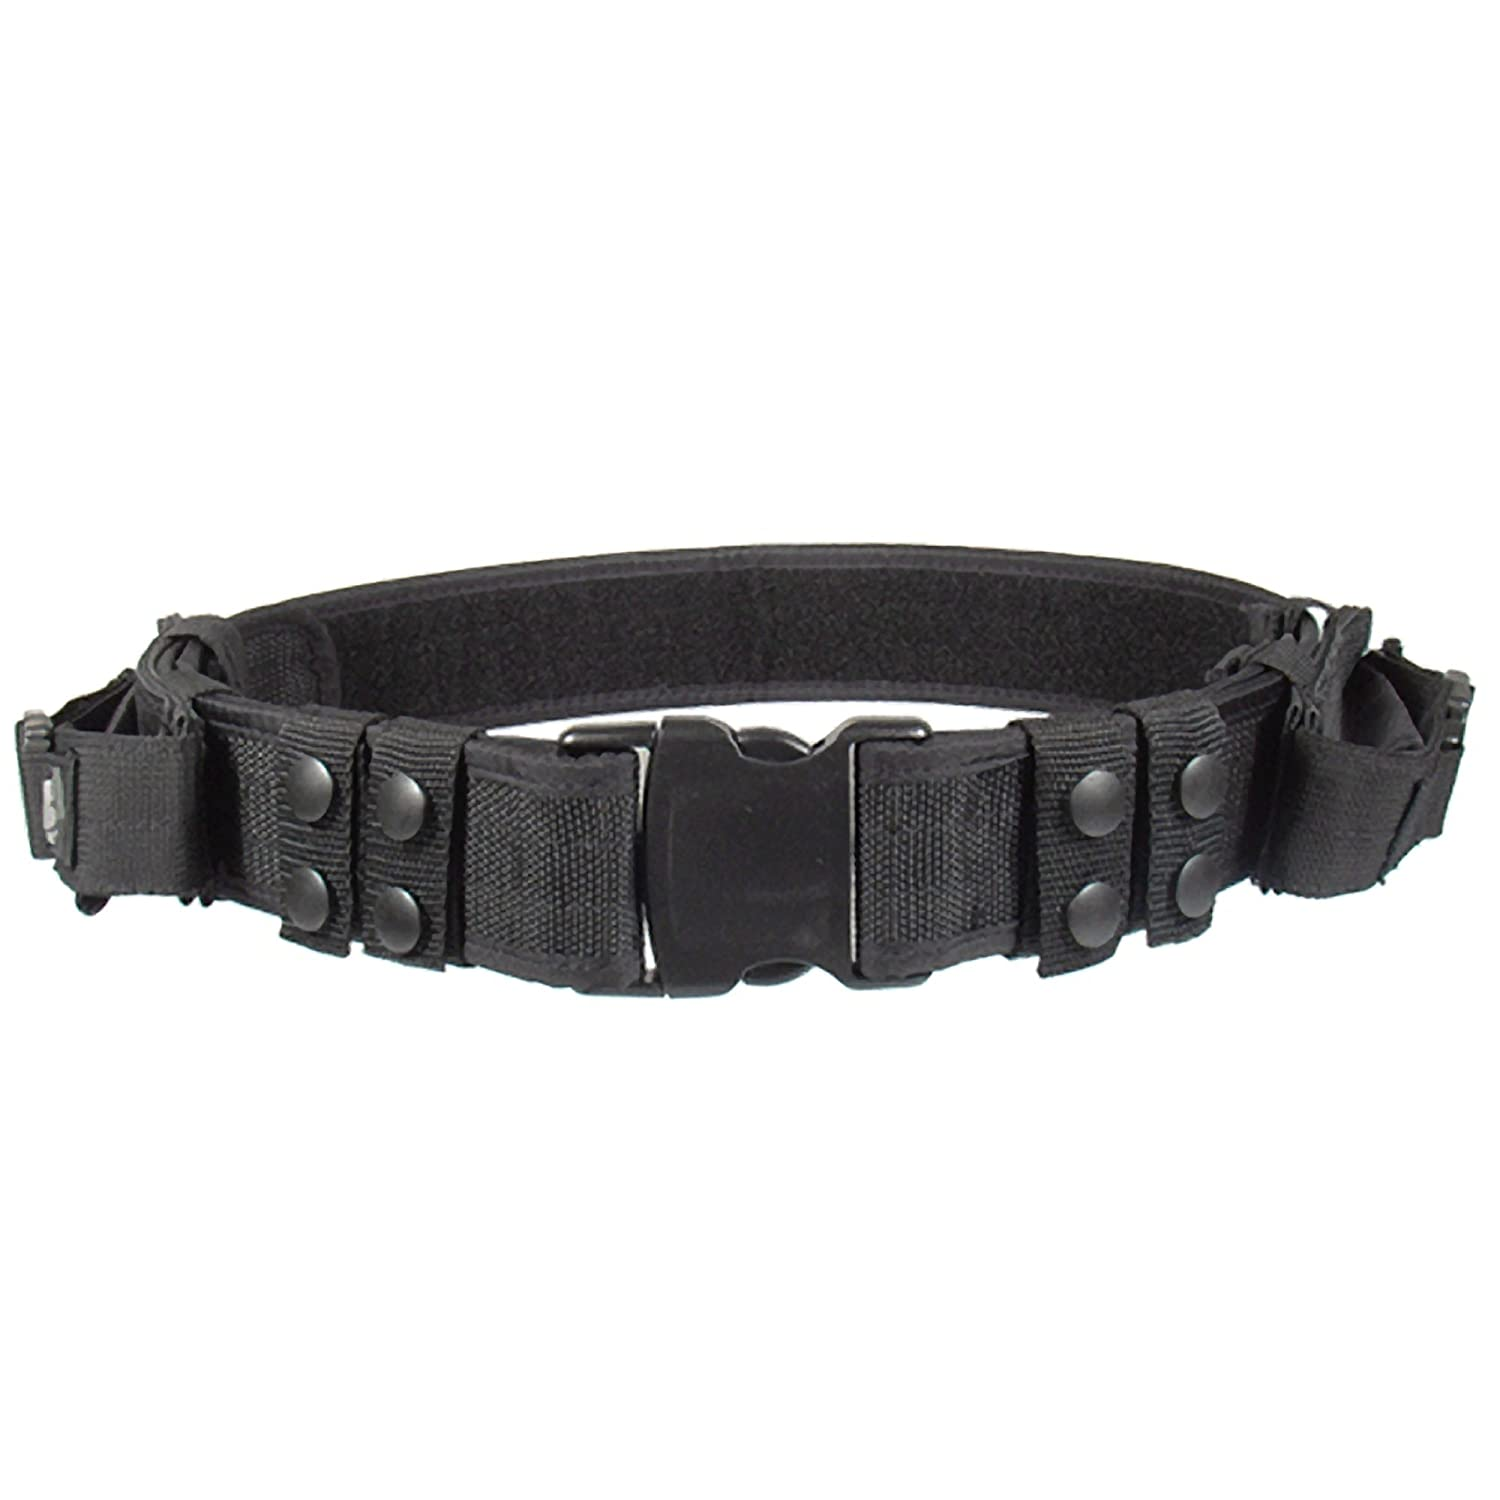 Law Enforcement Pistol Belt